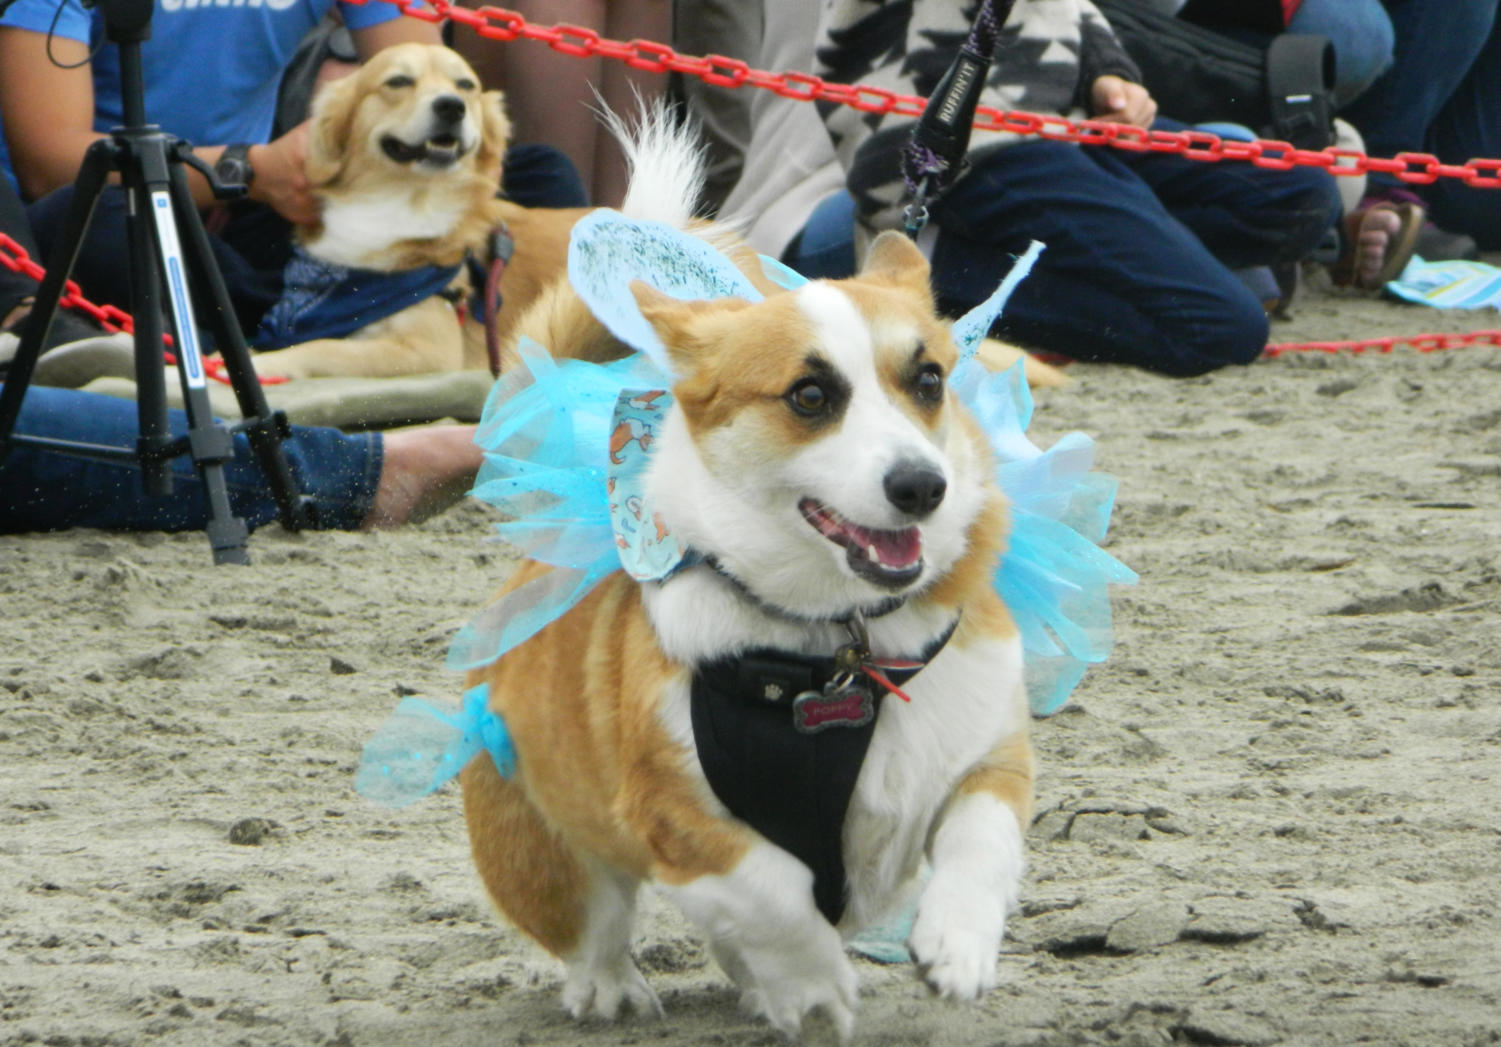 Button+the+corgi+wears+a+Cinderella+dress+made+by+her+owner+Kelli+Kohlweck+at+the+corgi+costume+contest.